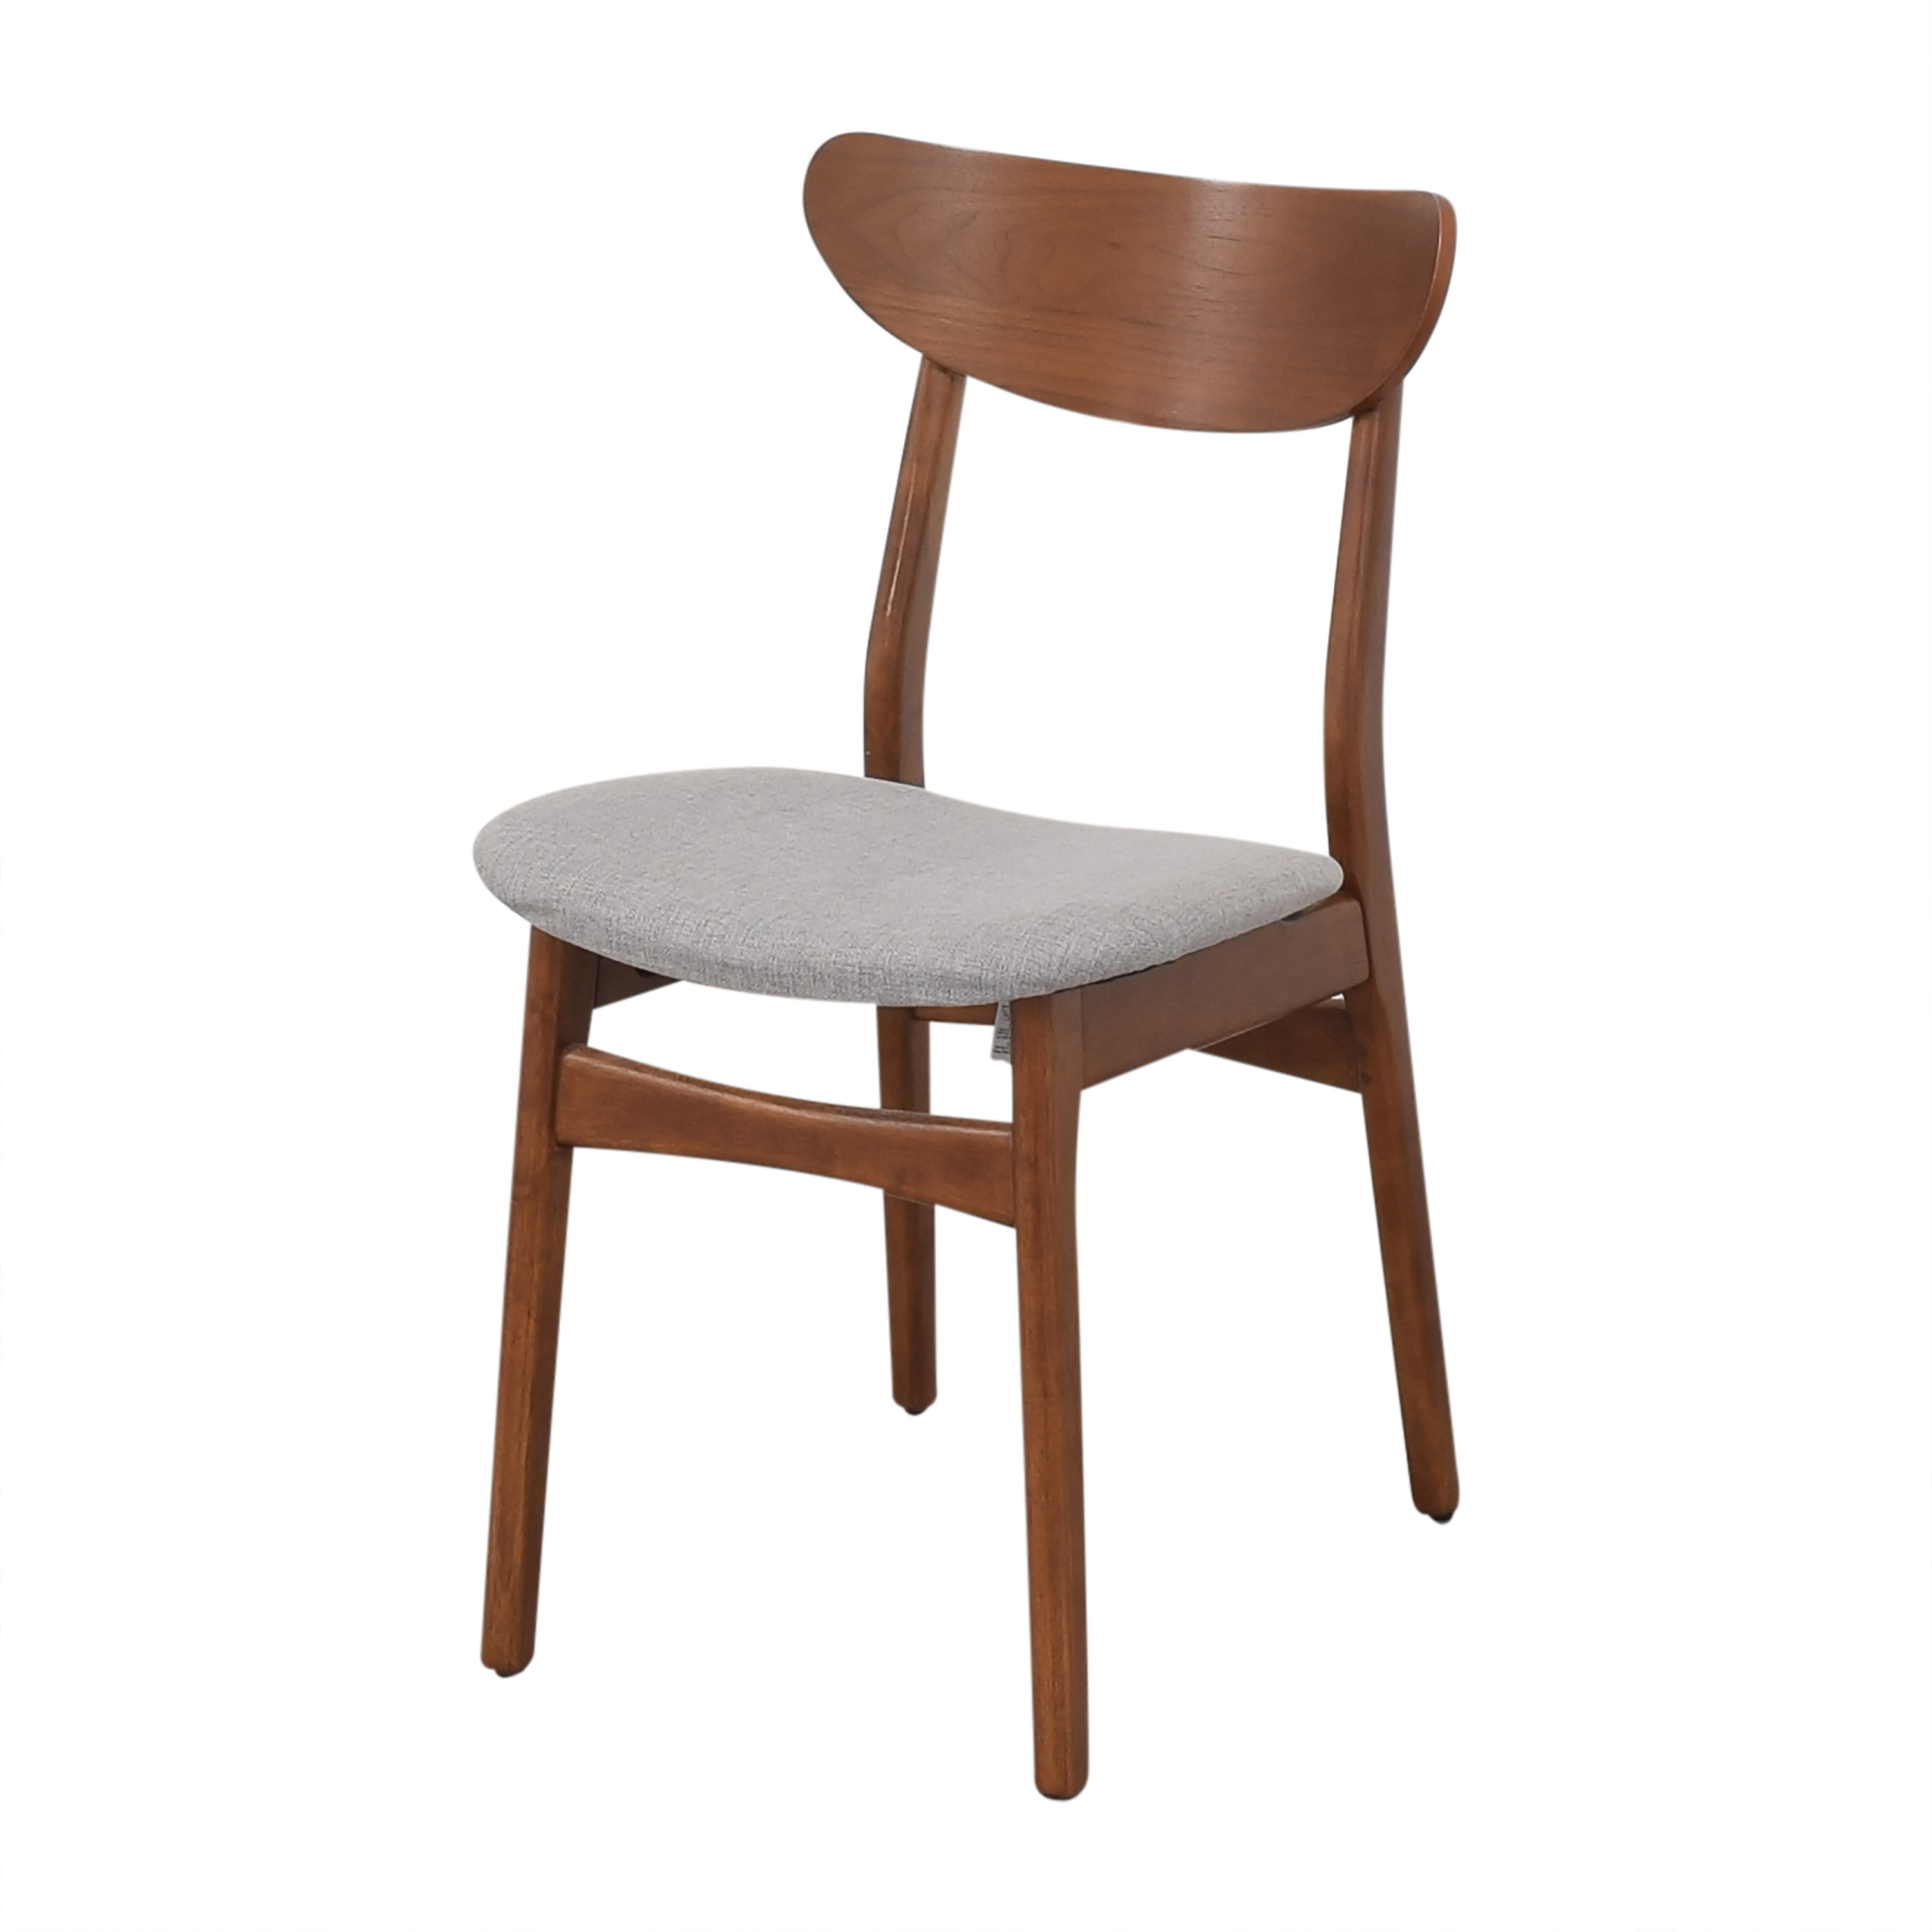 West Elm West Elm Classic Cafe Upholstered Dining Chairs second hand